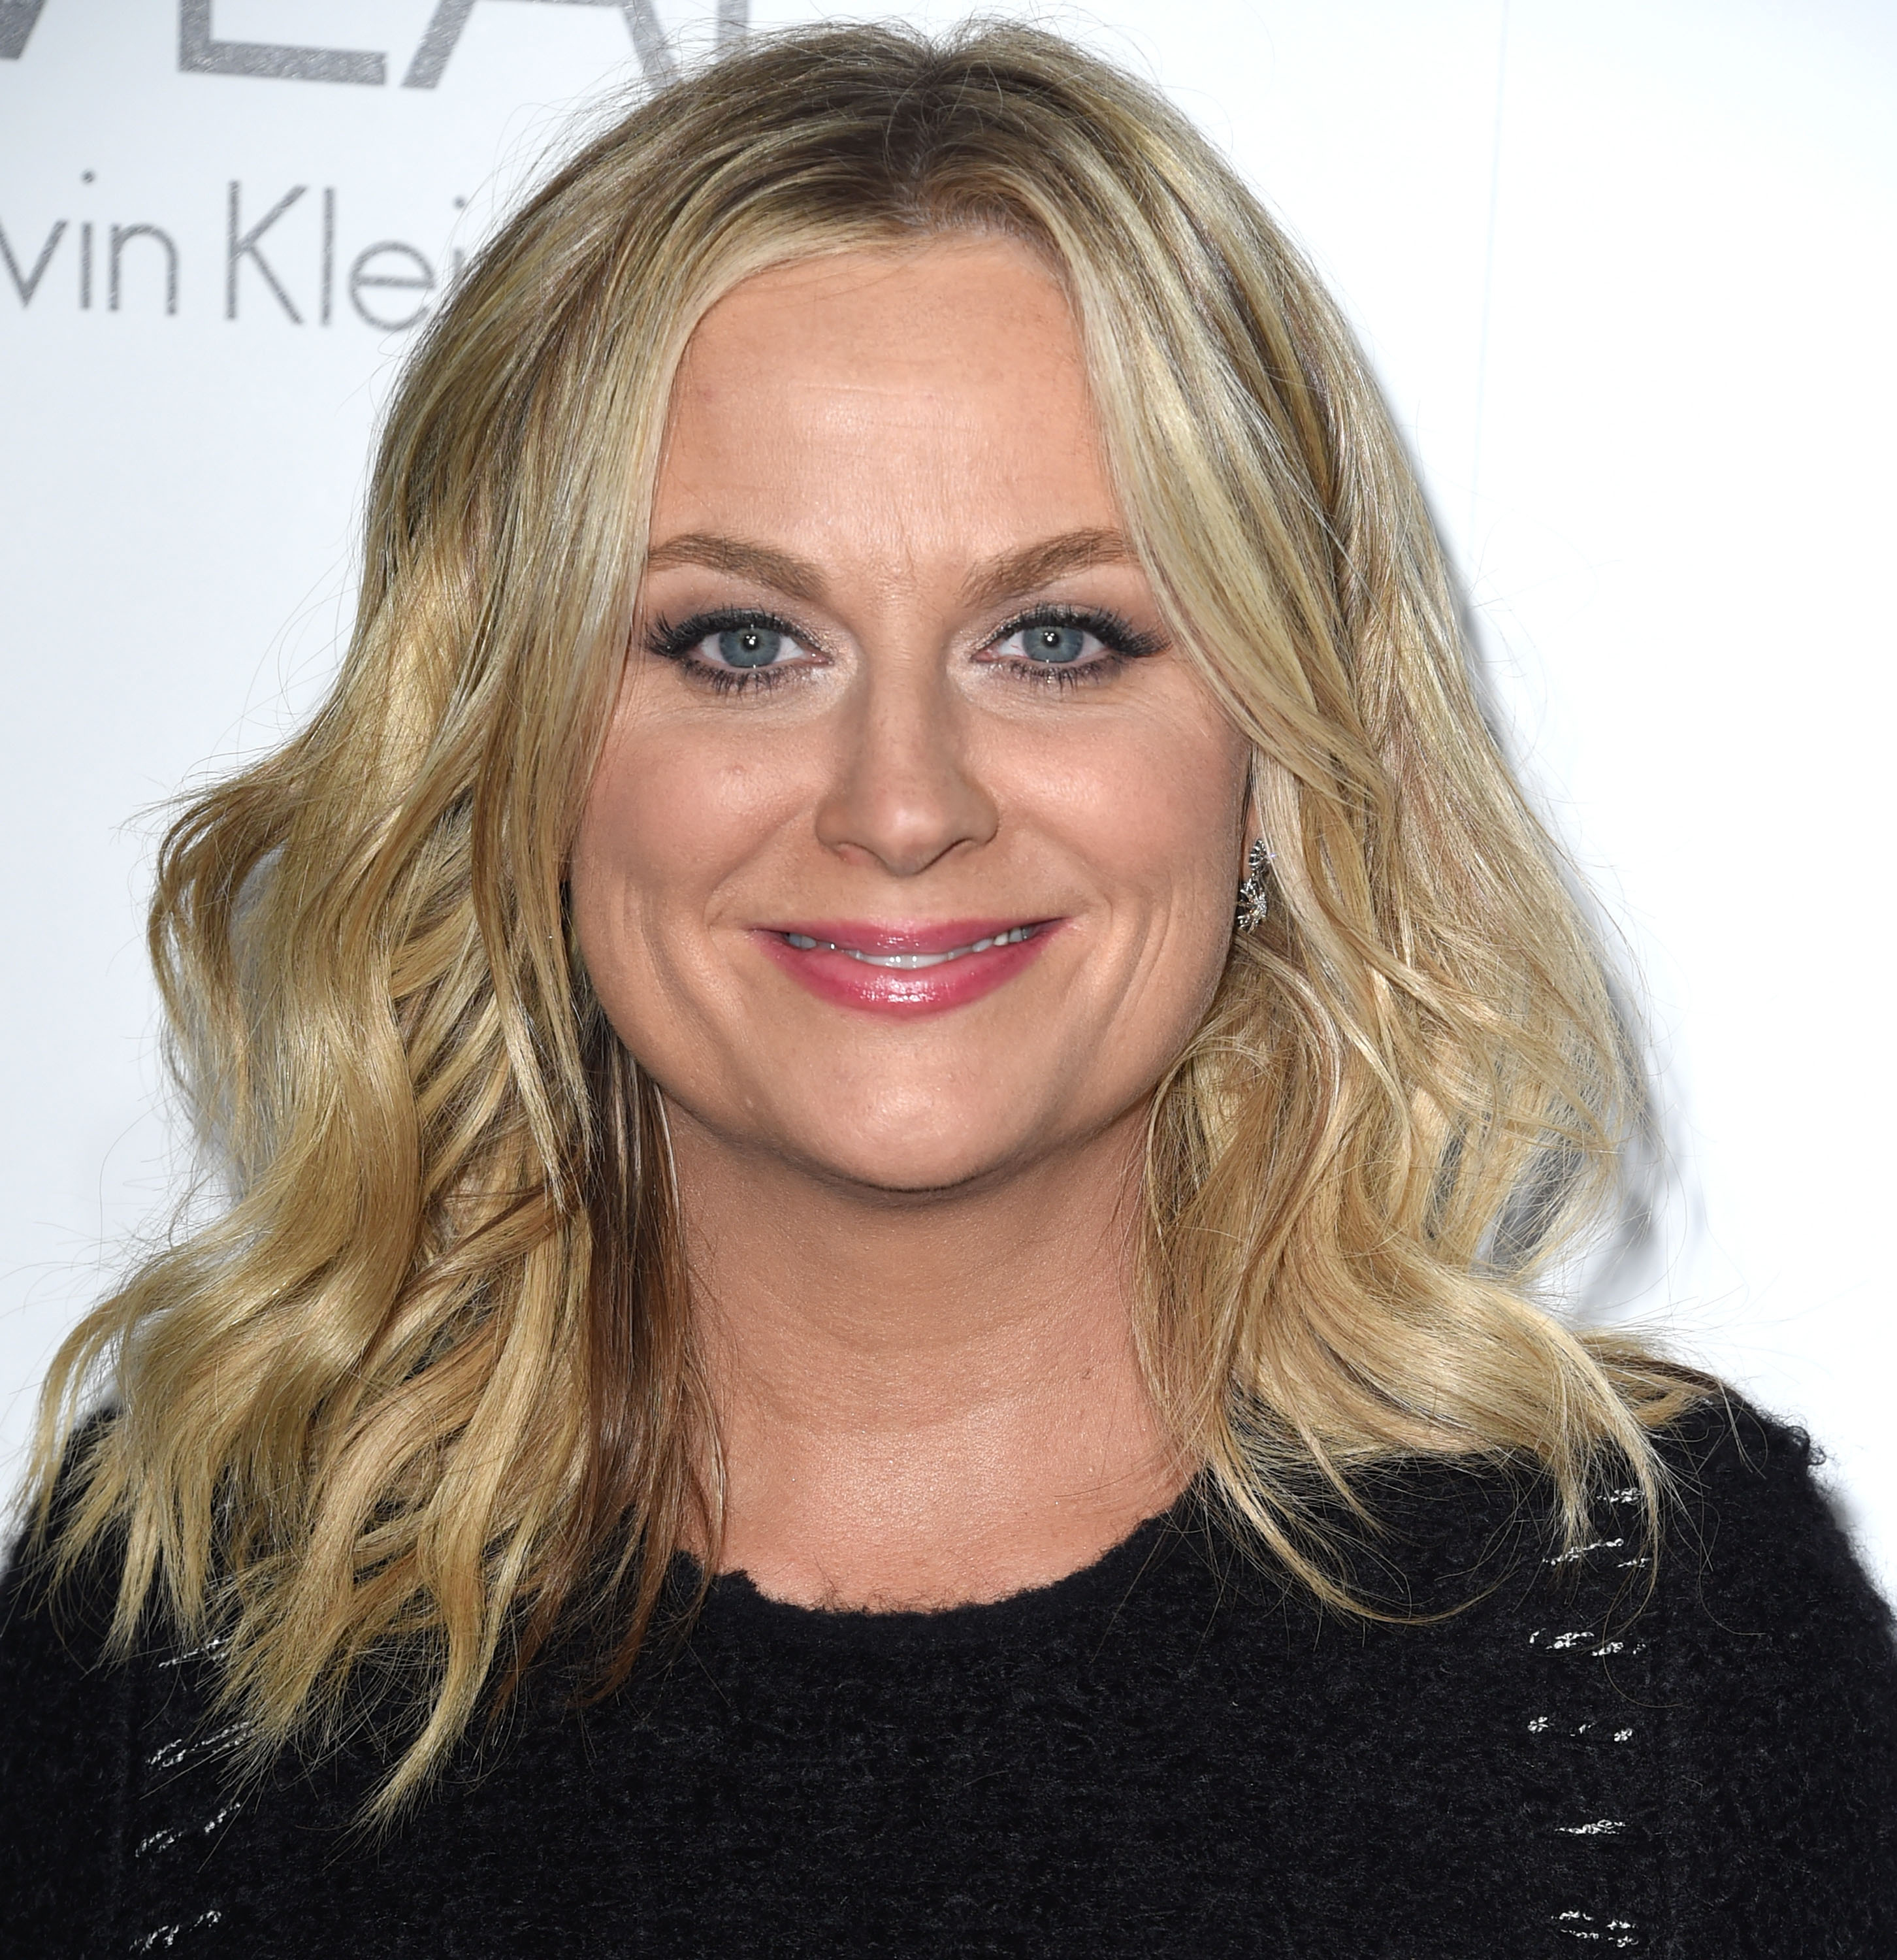 Amy Poehler arrives at the 2014 ELLE Women In Hollywood Awards at Four Seasons Hotel Los Angeles at Beverly Hills on Oct. 20, 2014 in Beverly Hills.